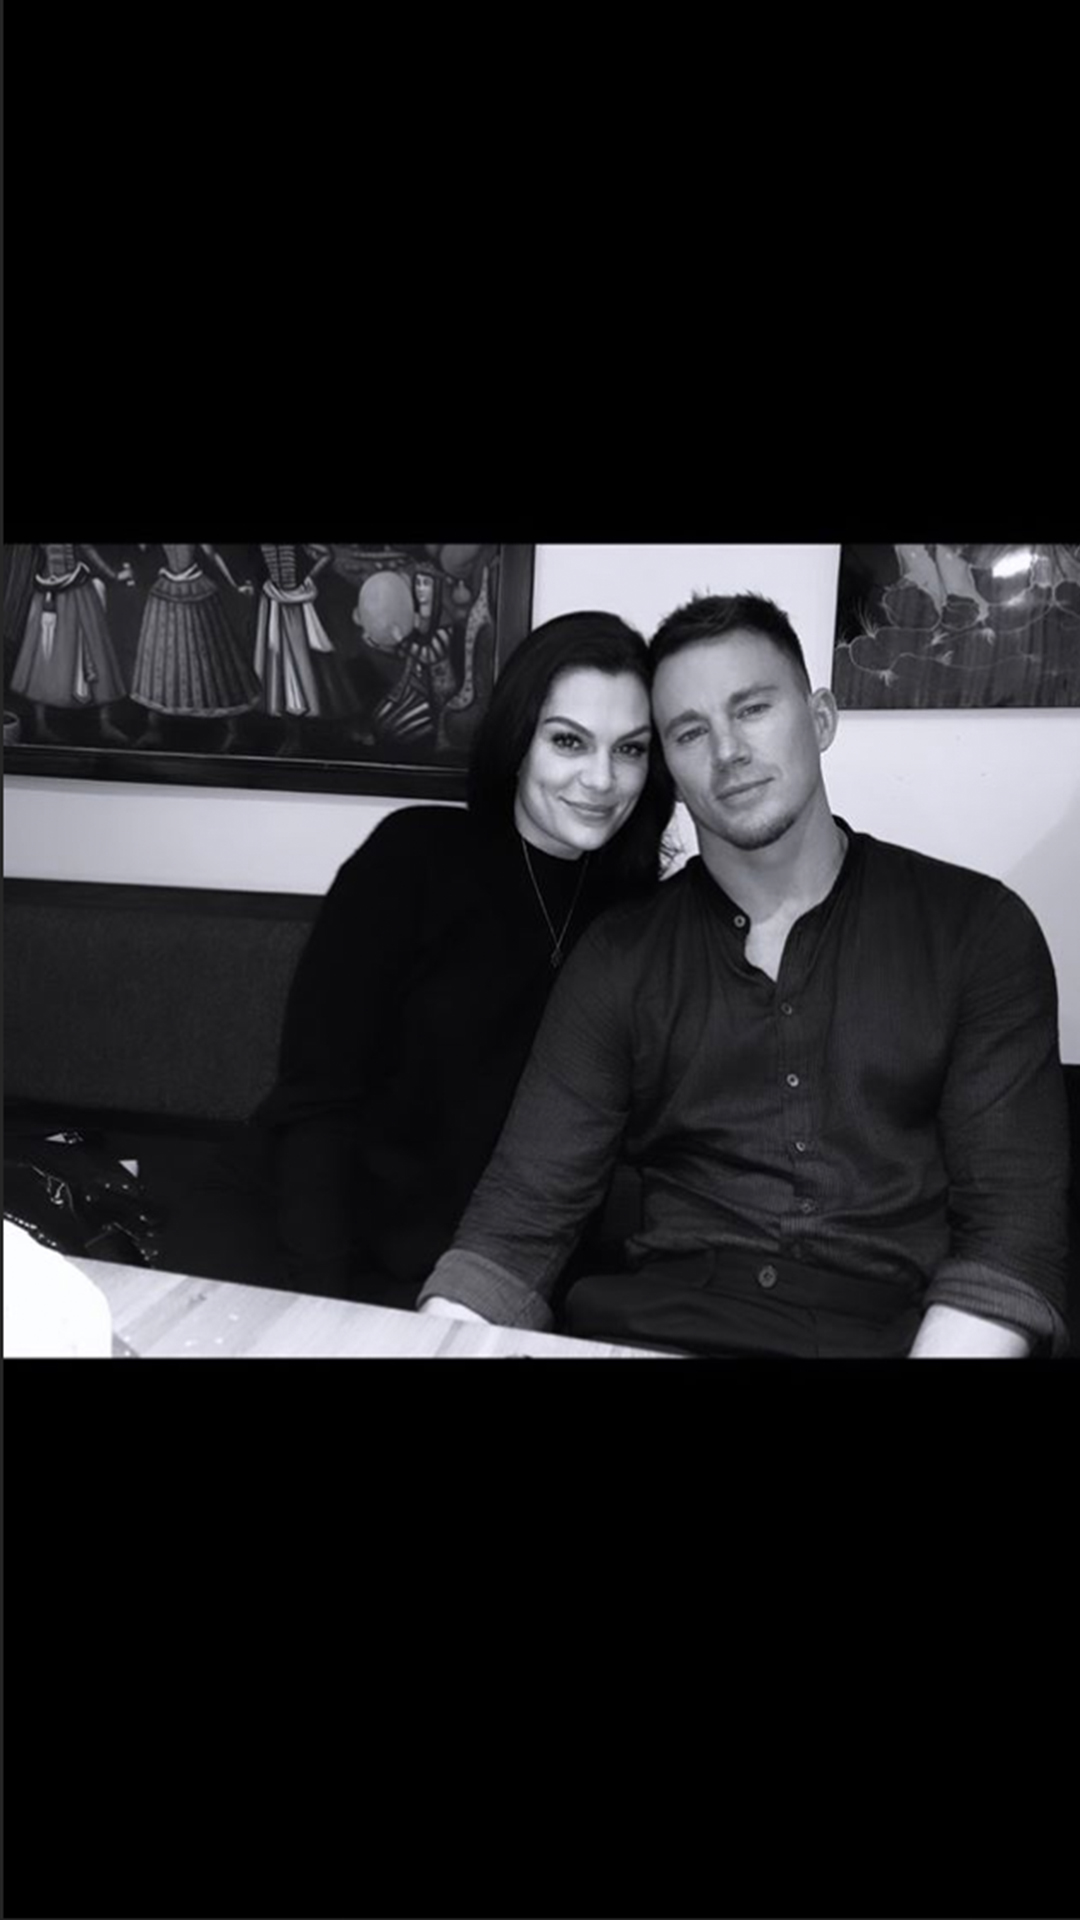 Jessie J and Channing Tatum date night